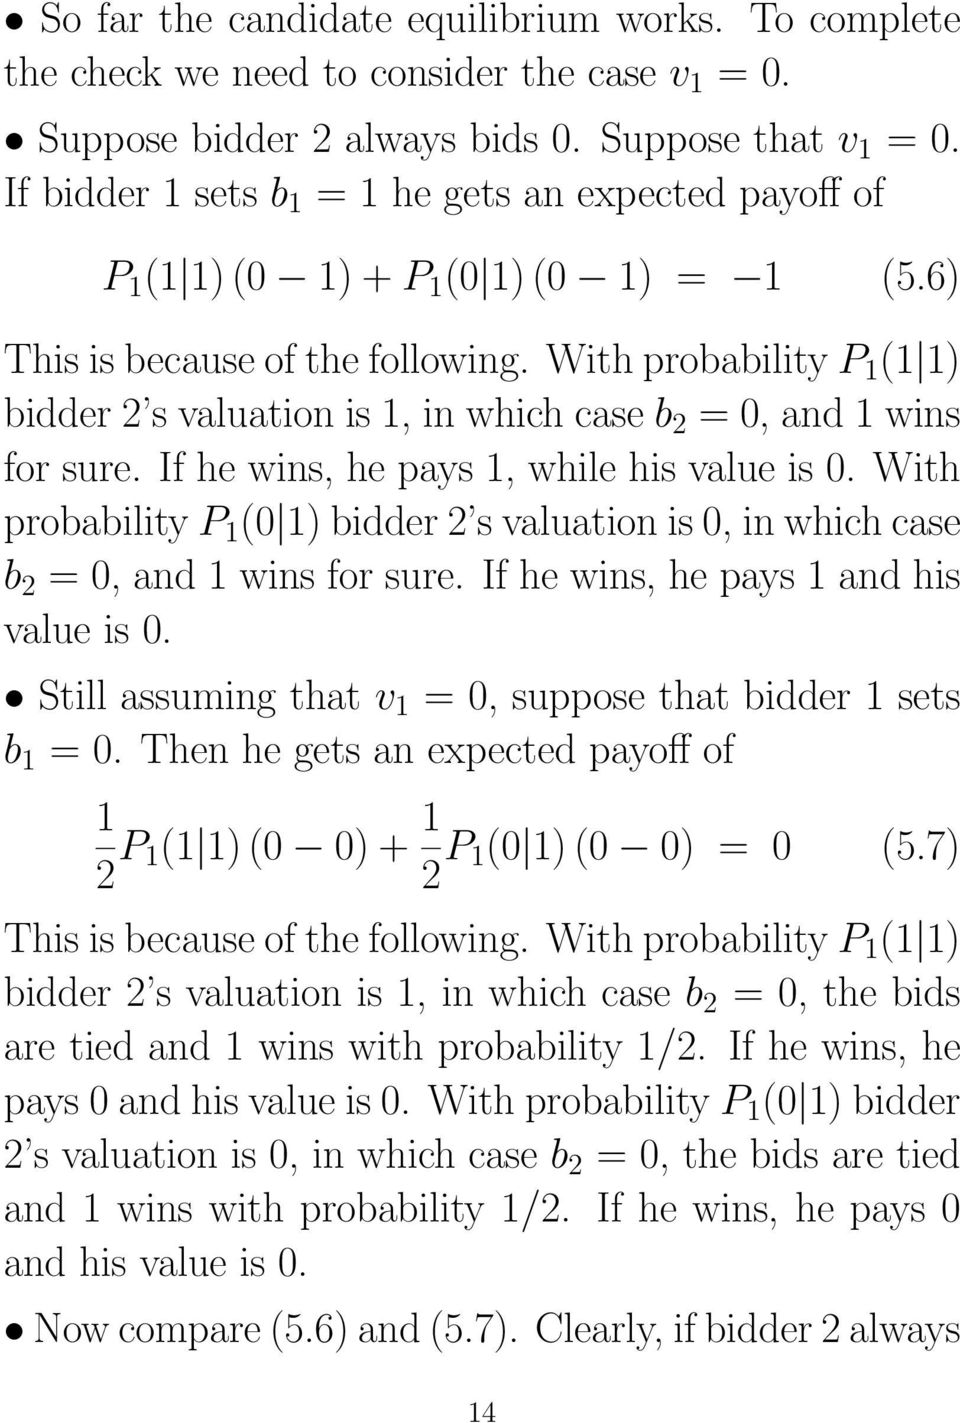 With probability P 1 (1 1) bidder 2 s valuation is 1, in which case b 2 = 0, and 1 wins for sure. If he wins, he pays 1, while his value is 0.